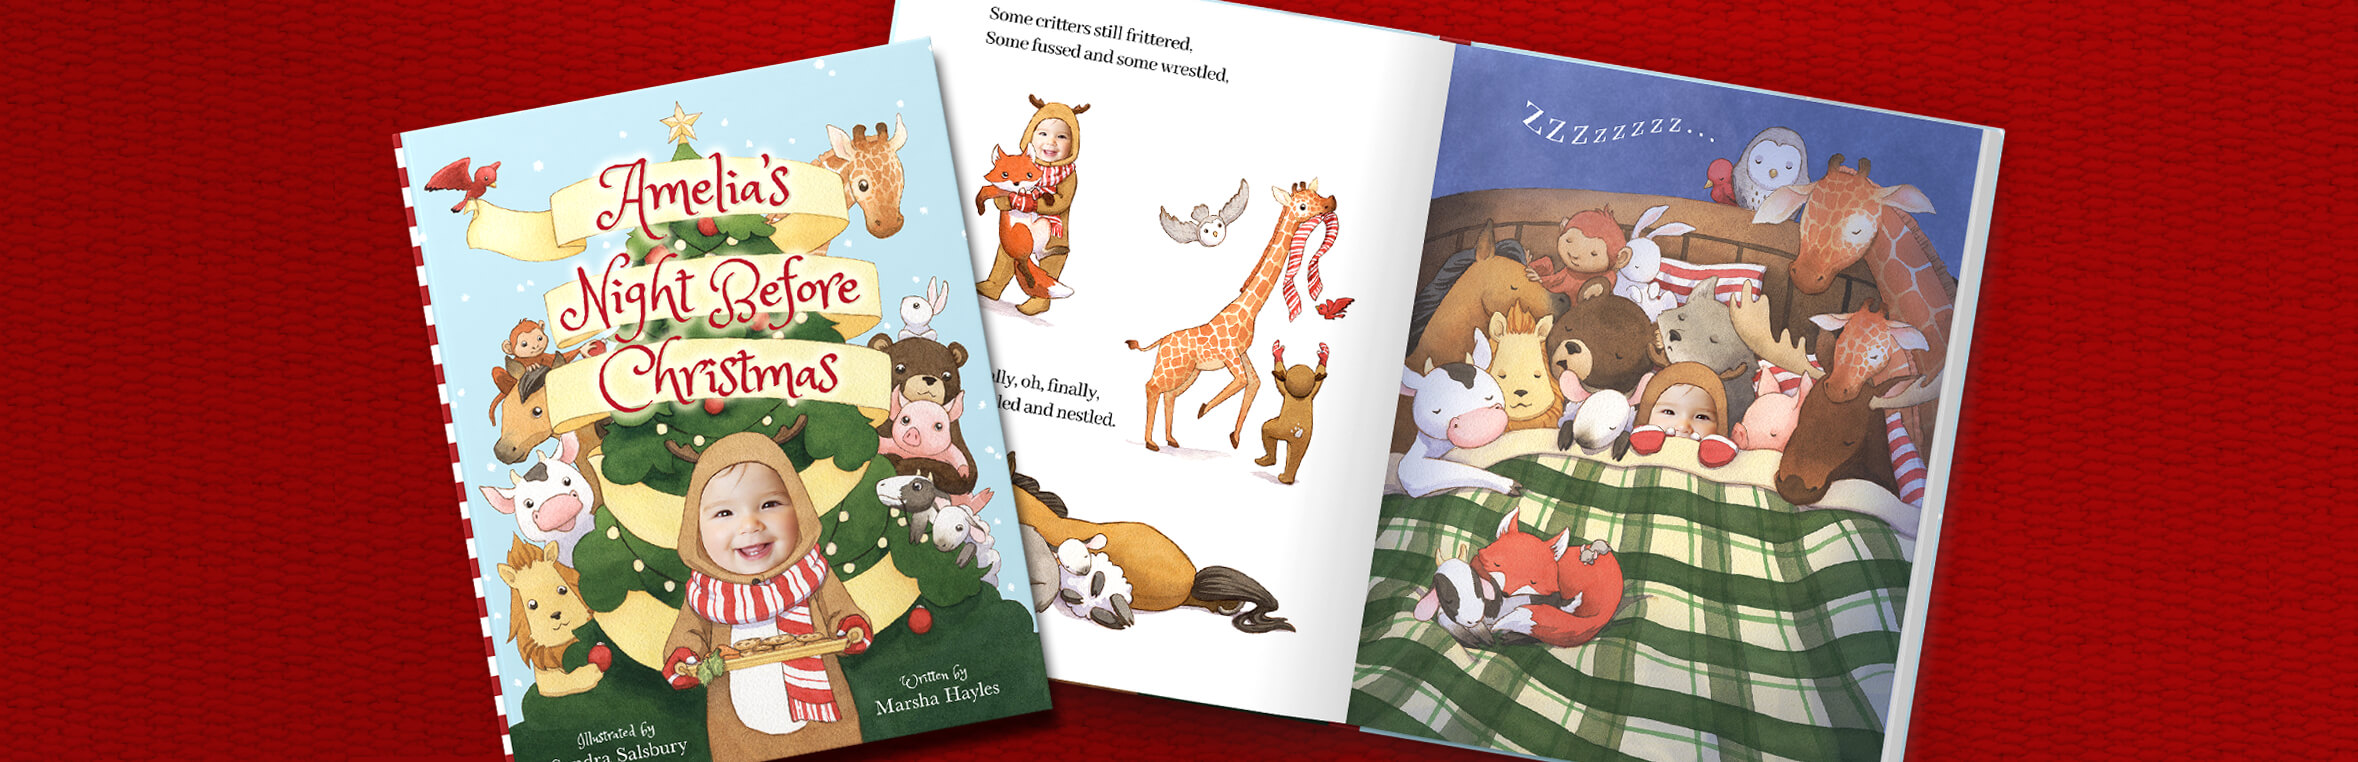 personalized christmas book night before christmas read your story